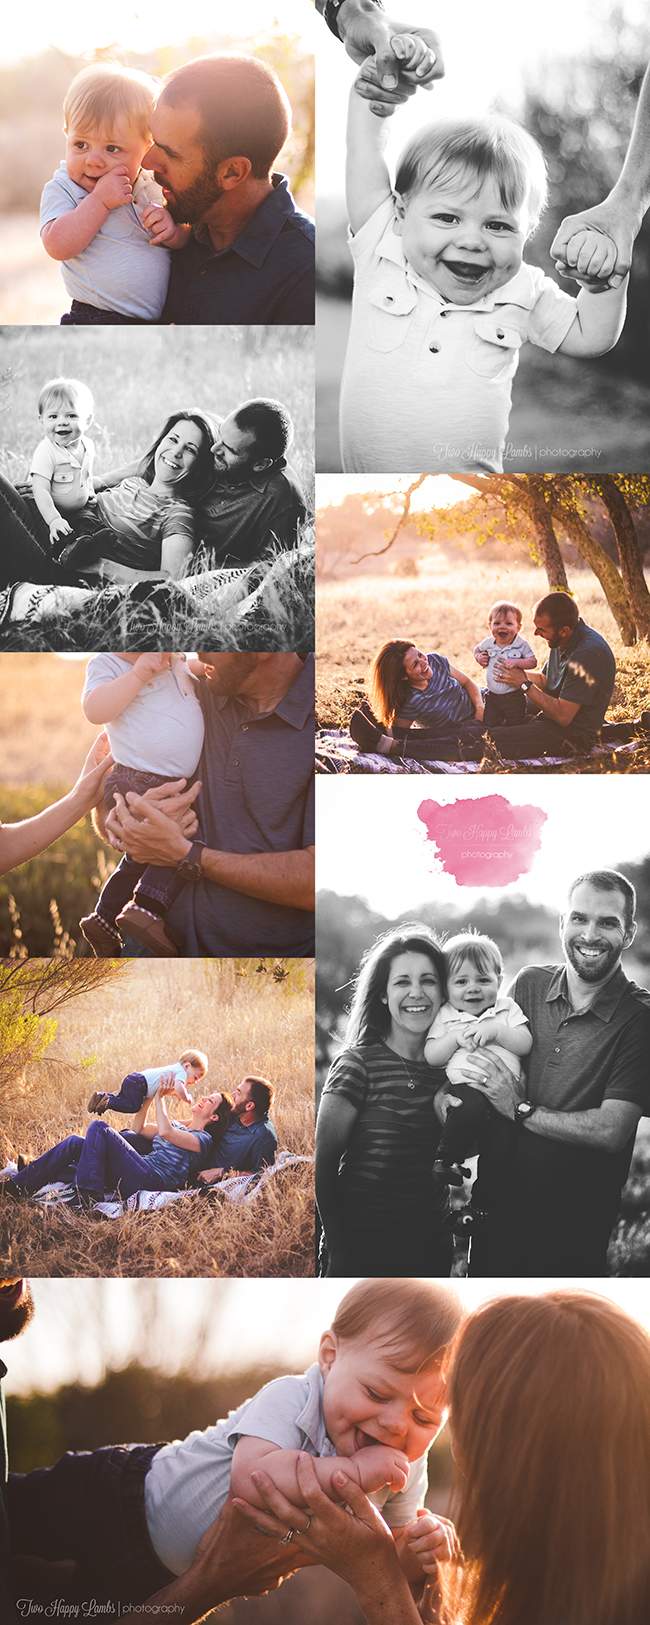 2015-07-Two-Happy-Lambs-Photography-family-summer-fall-central-coast-california-sunset-simple-golden-field-natural-baby-photographer-blog